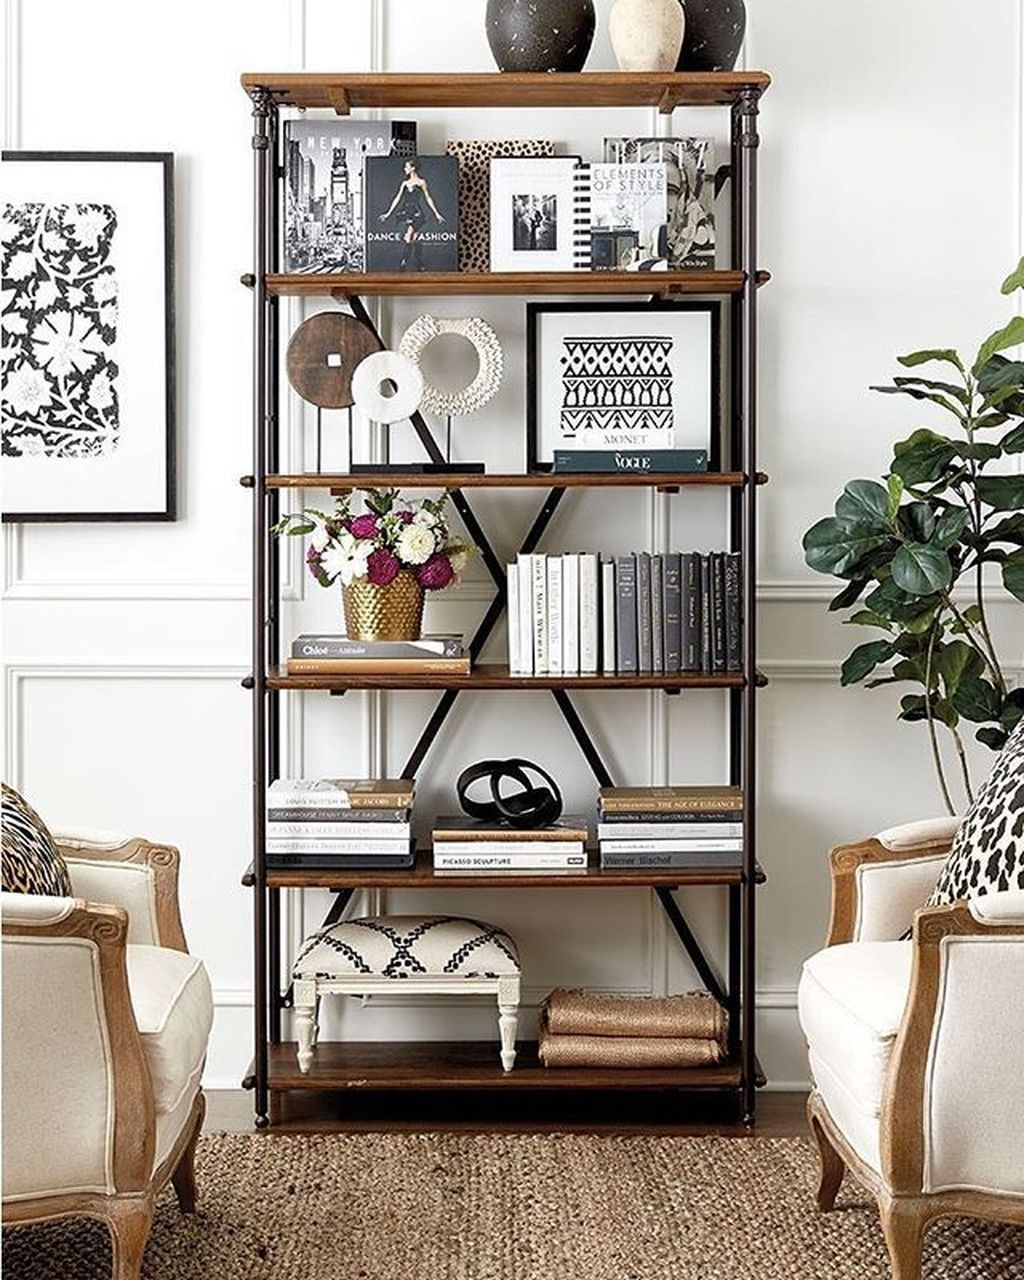 44 Awesome Open Shelving Bookshelves Ideas To Decorating Your